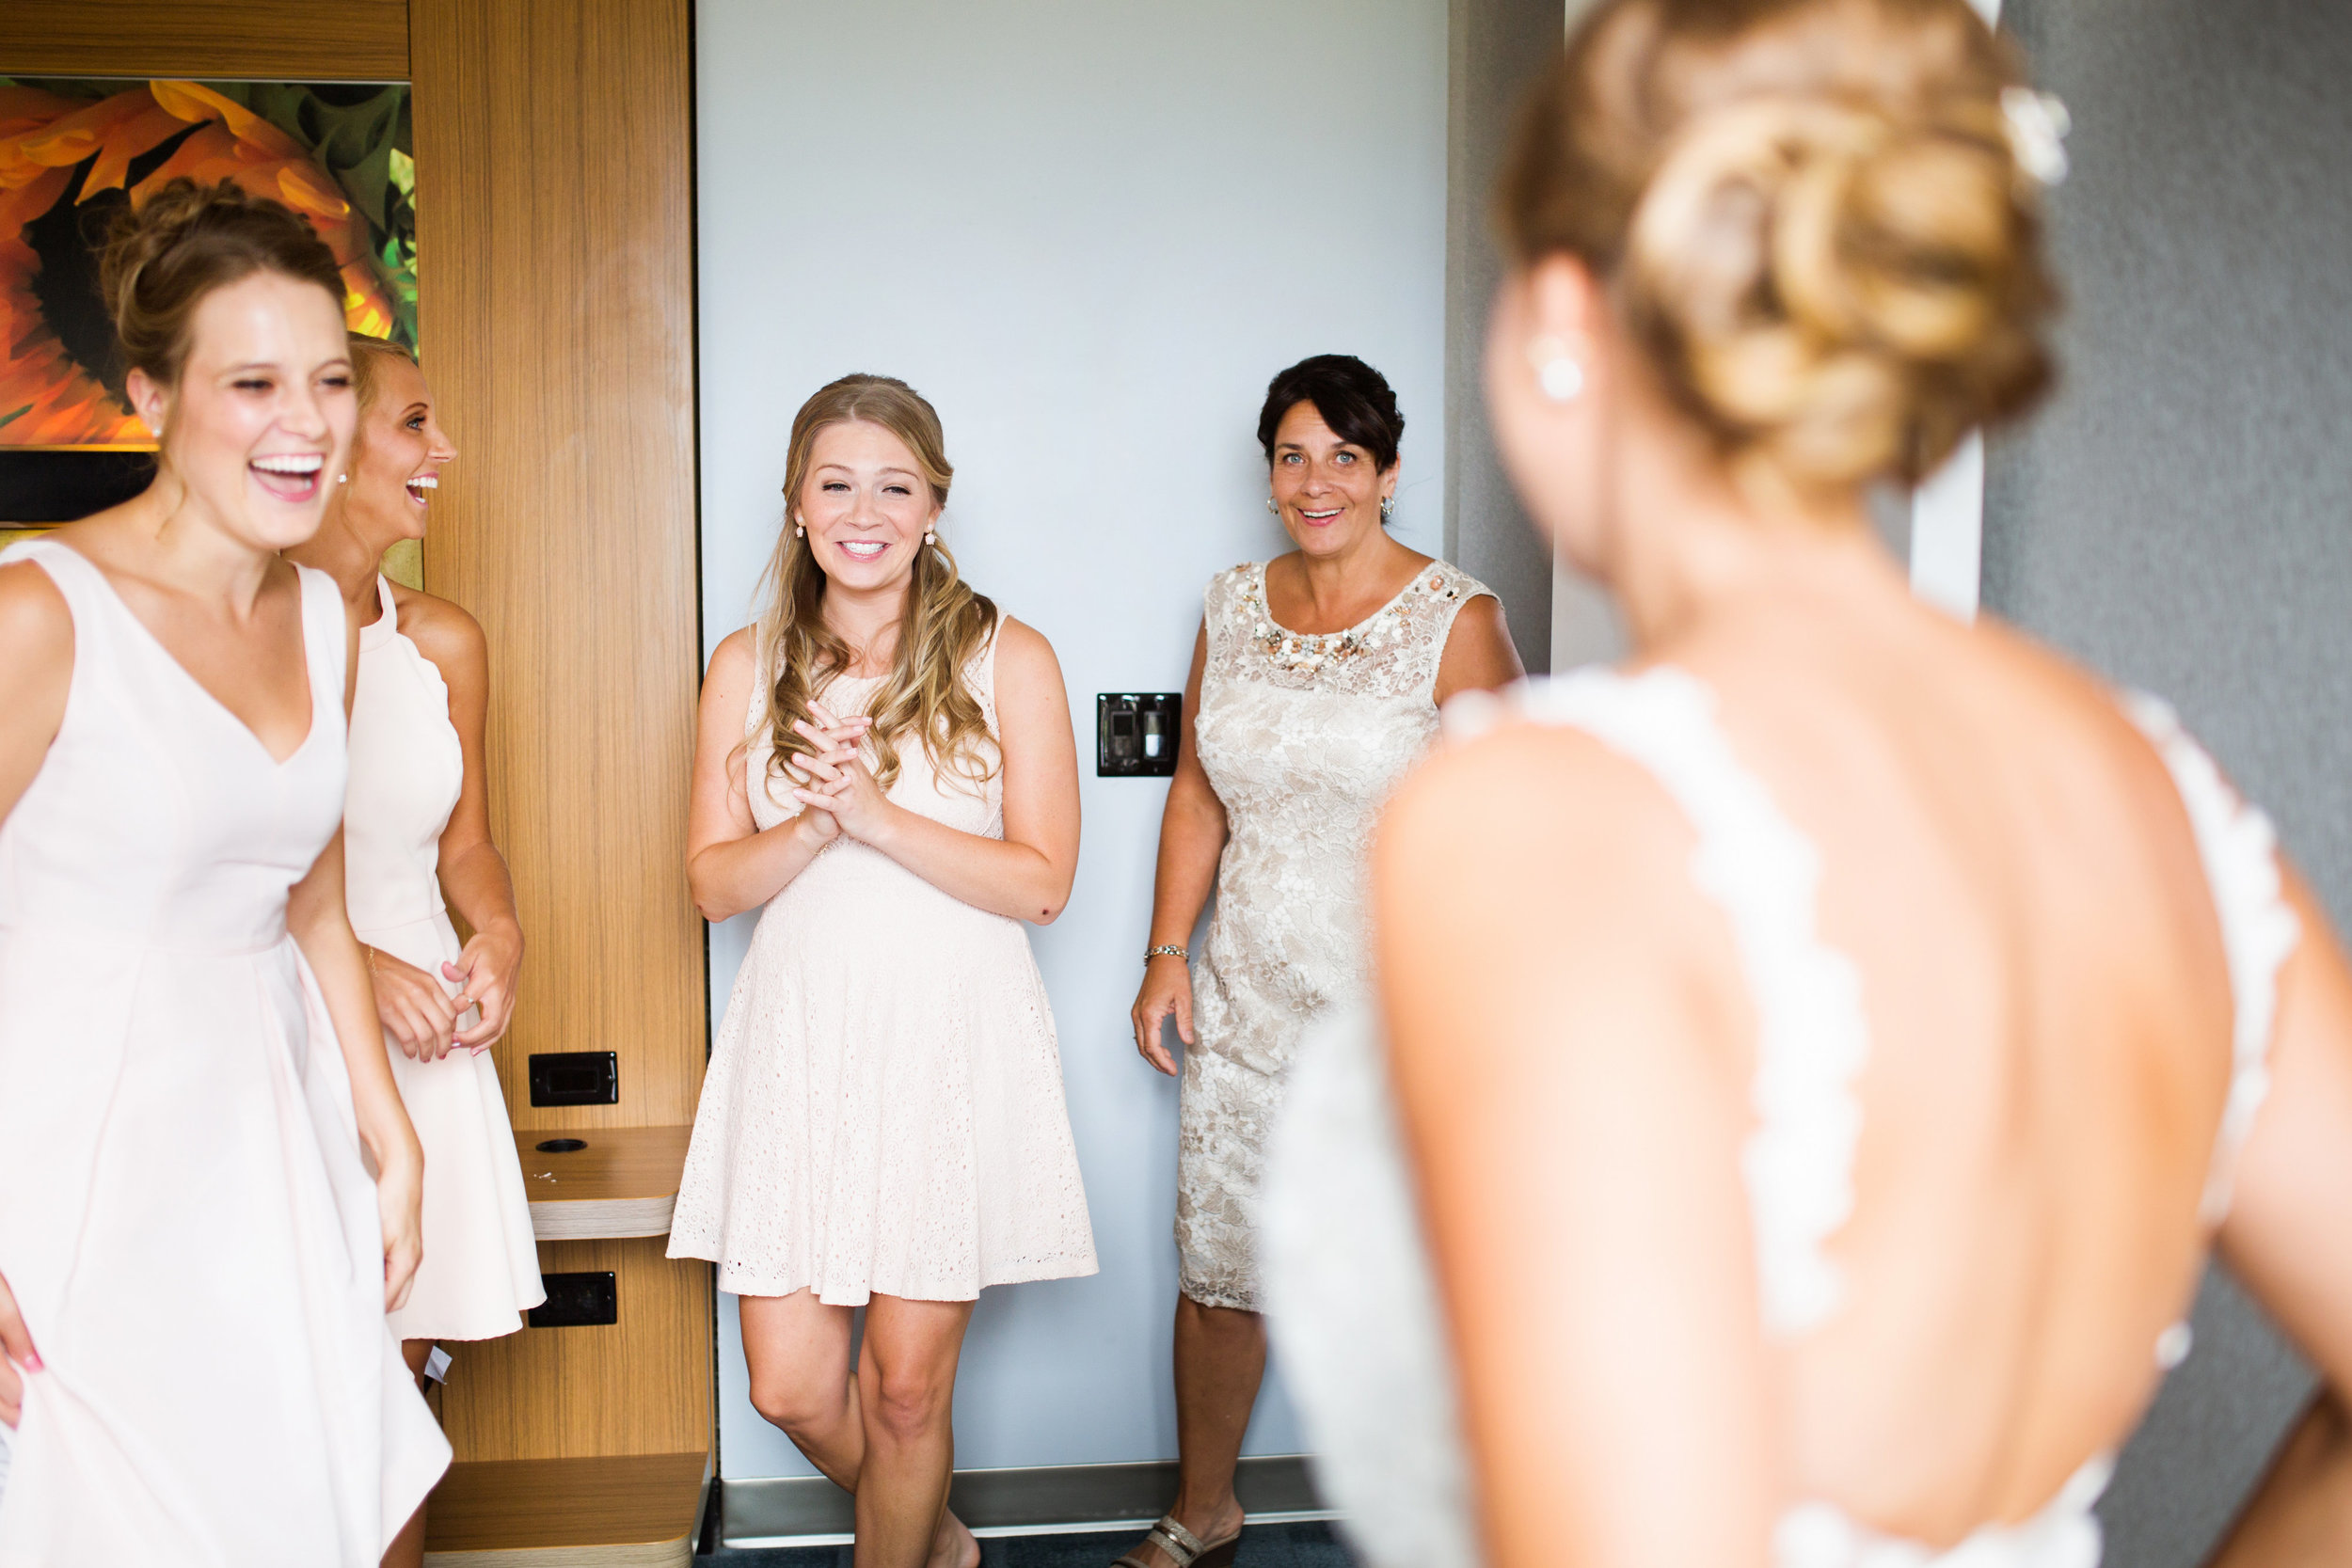 Kaylie + Travis | Sixpence Events wedding planner in the midwest | Studio KH photography | bride first look with bridesmaids and MOG